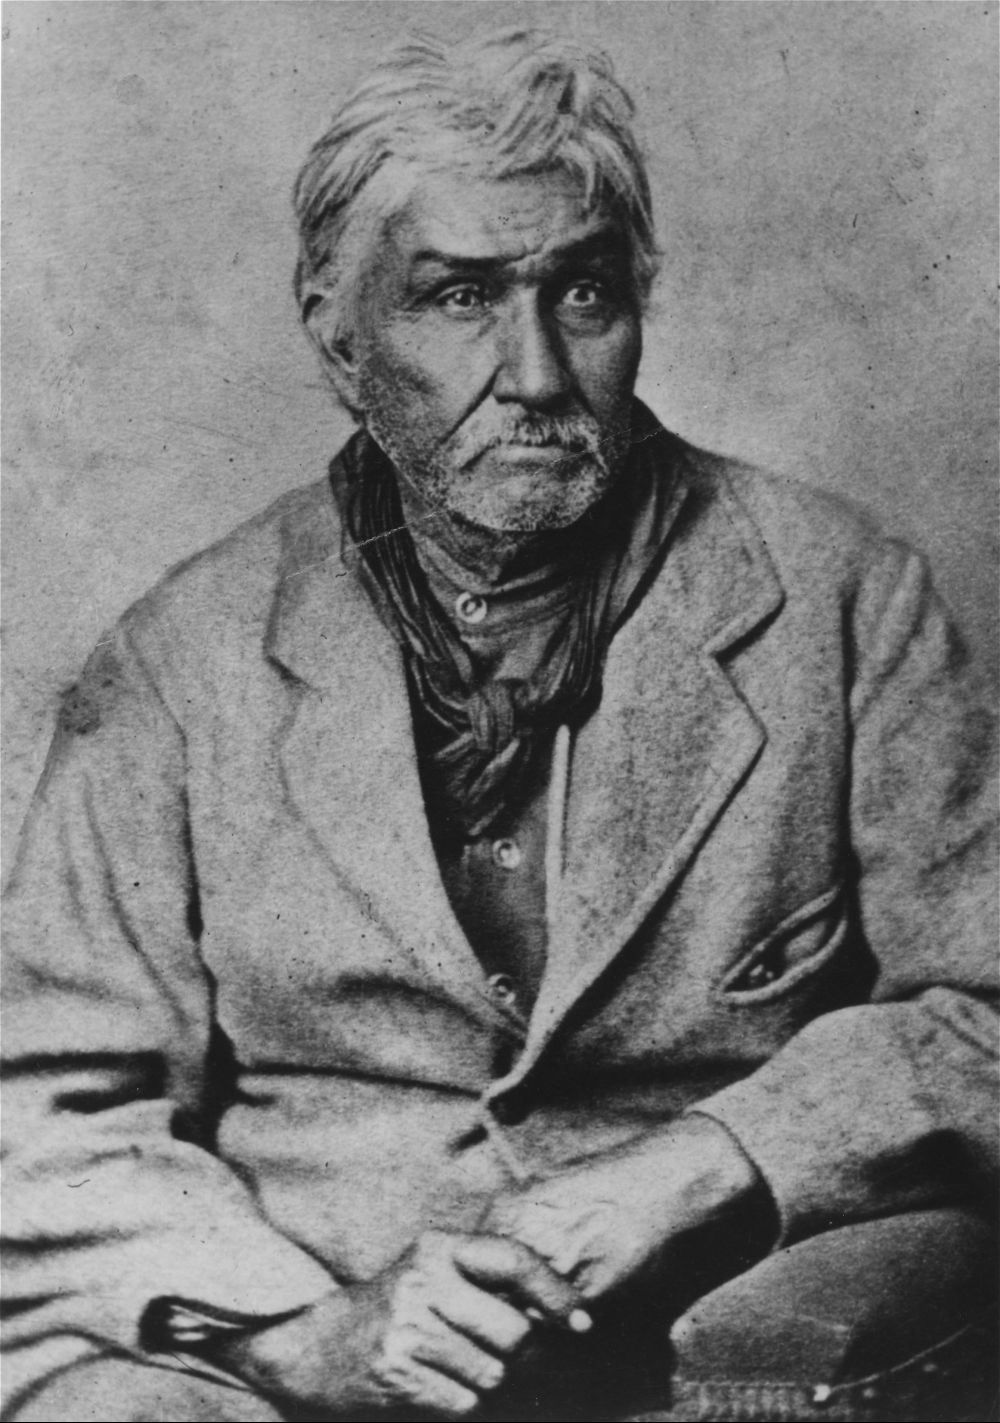 Jesse Chisholm, an Indian trader, guide and interpreter. He is best known for being the namesake to the Chisholm Trail, which Texas ranchers used to drive their cattle into Kansas and then ship by rail to eastern markets. Date: Between 1865 and 1868 (Photo via Kansas Historical Society/kansasmemory.org)